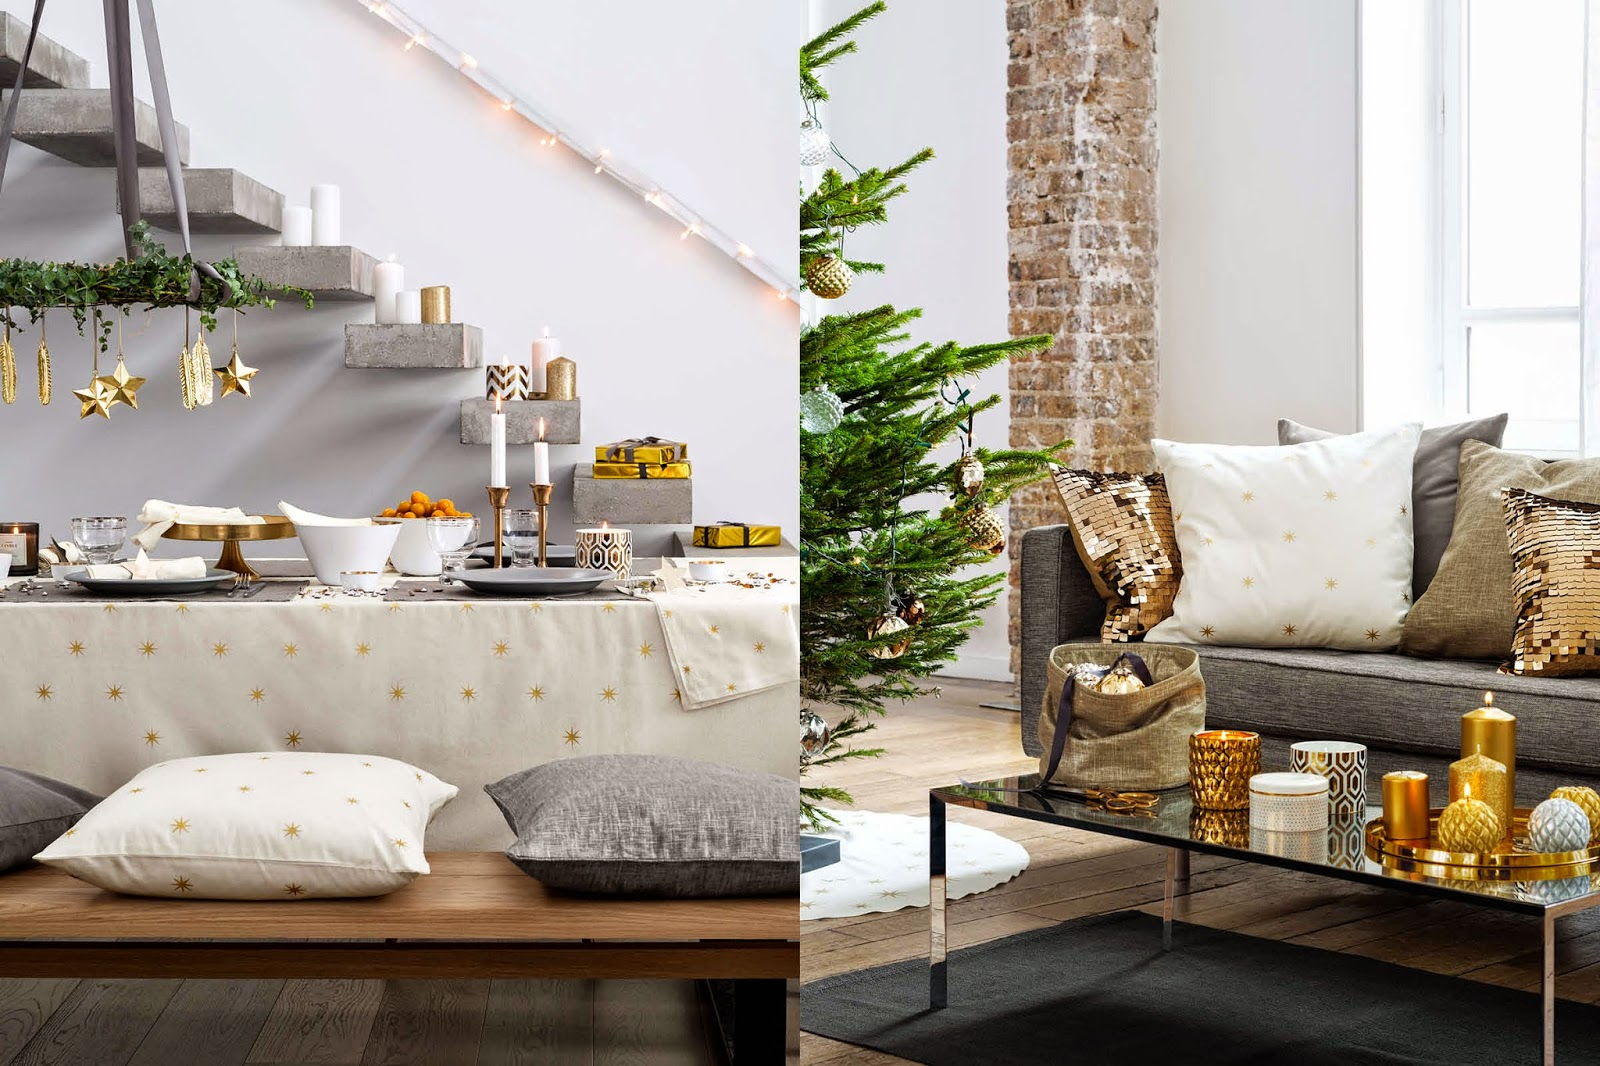 Decoraci n f cil tendencias navidad 2014 2015 segun h m home for Decoracion hogar tendencias